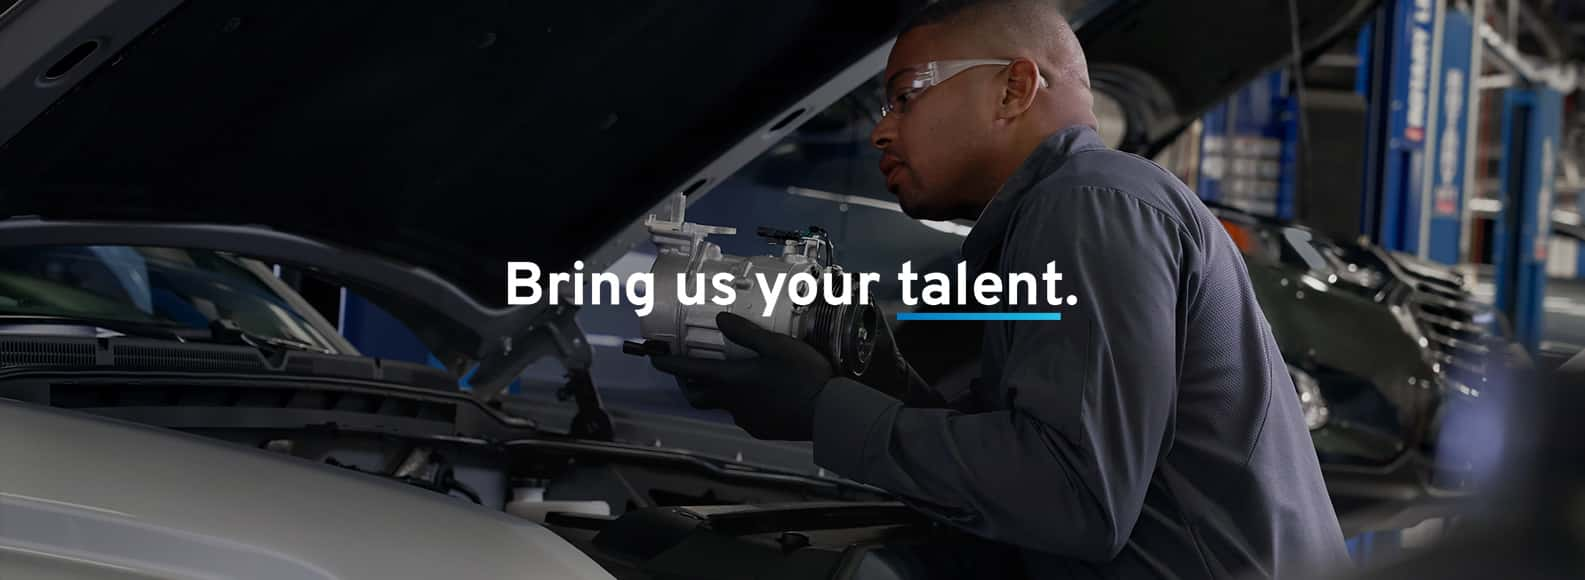 Bring us your talent.